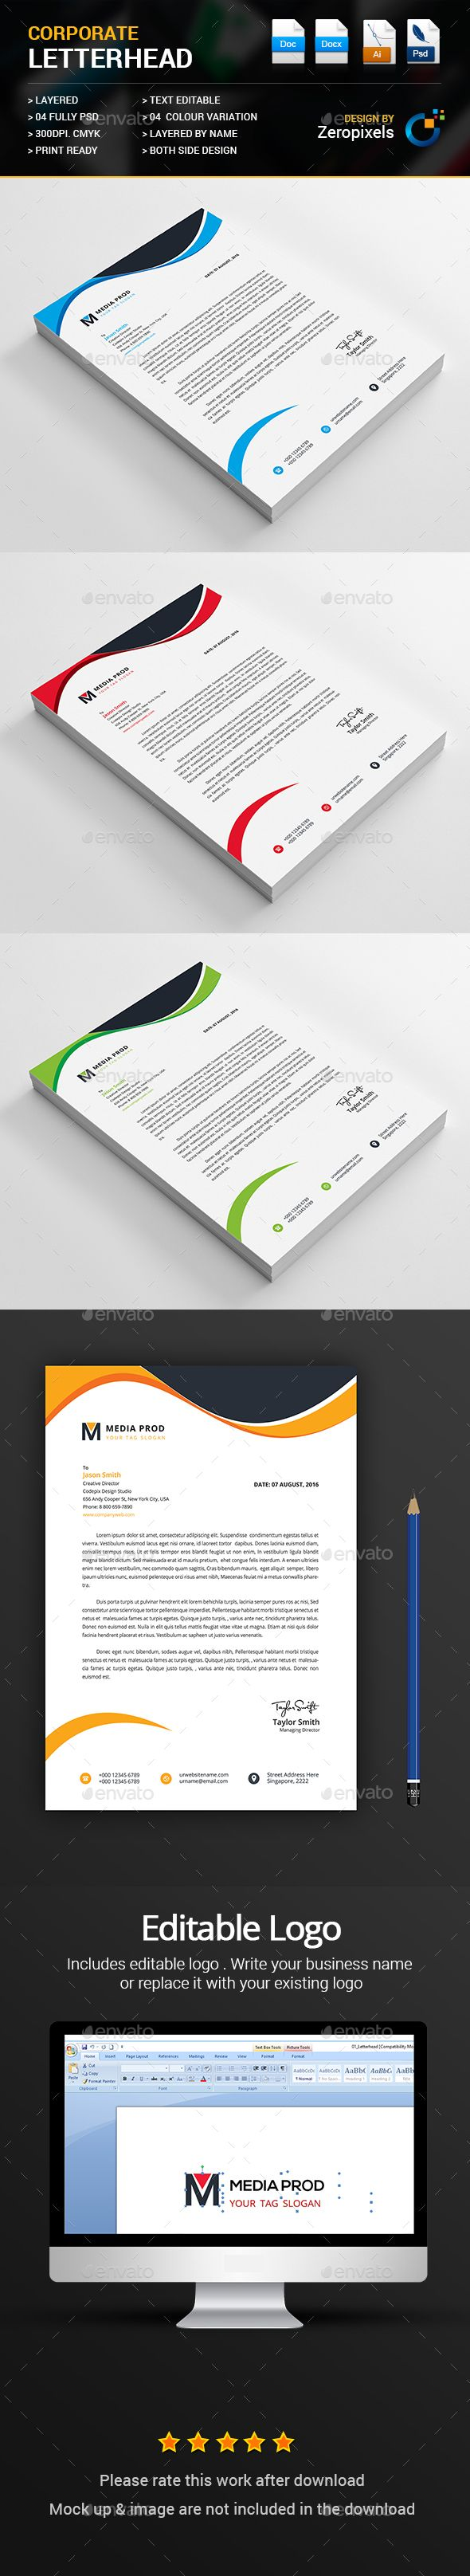 Letterhead — PSD Template #landscape #company • Download ➝ https://graphicriver.net/item/letterhead/18190410?ref=pxcr